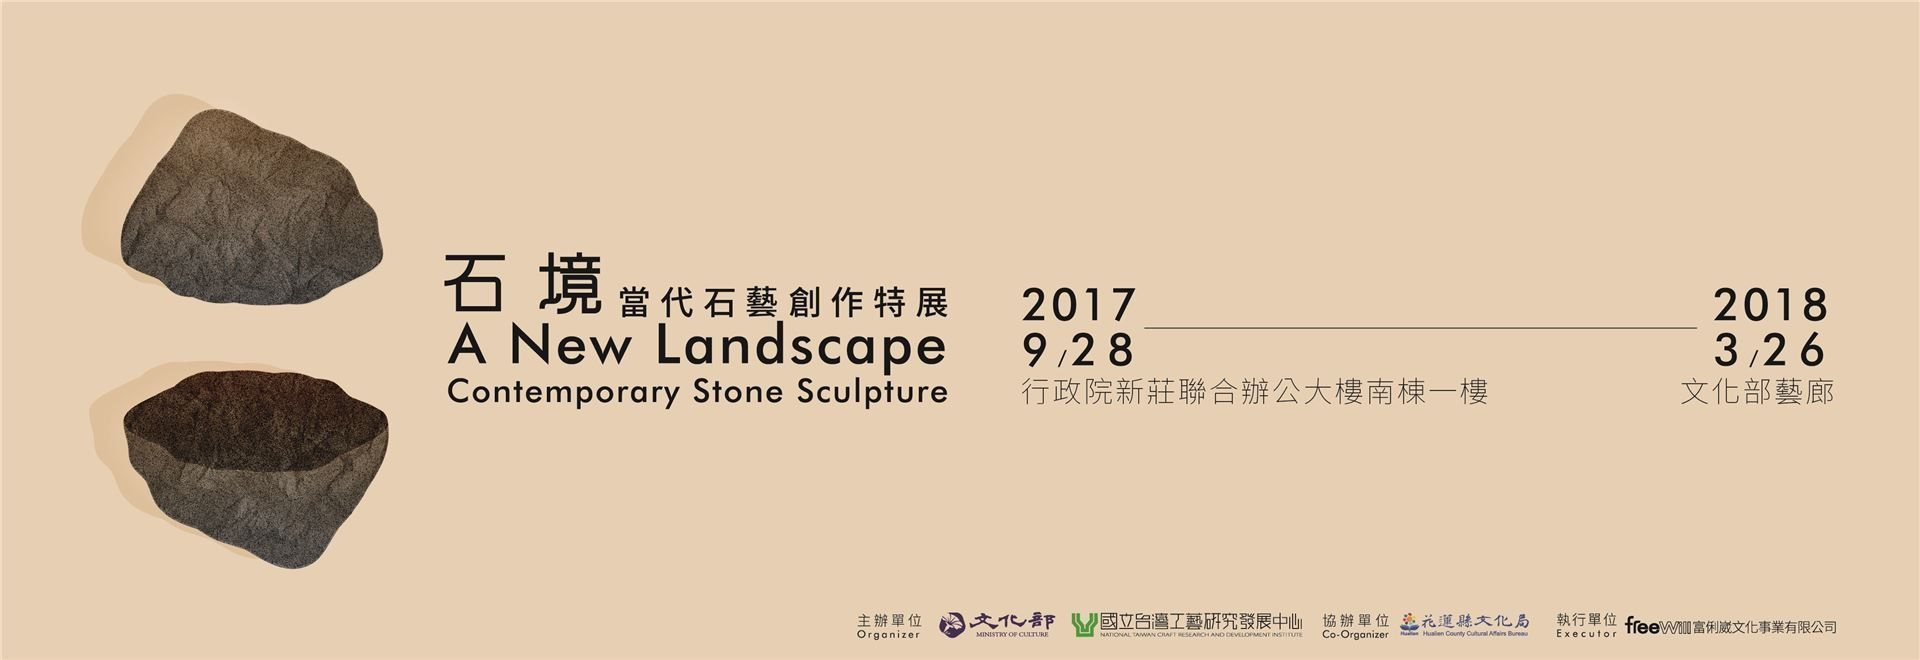 A New Landscape—Contemporary Stone Sculpture[另開新視窗]